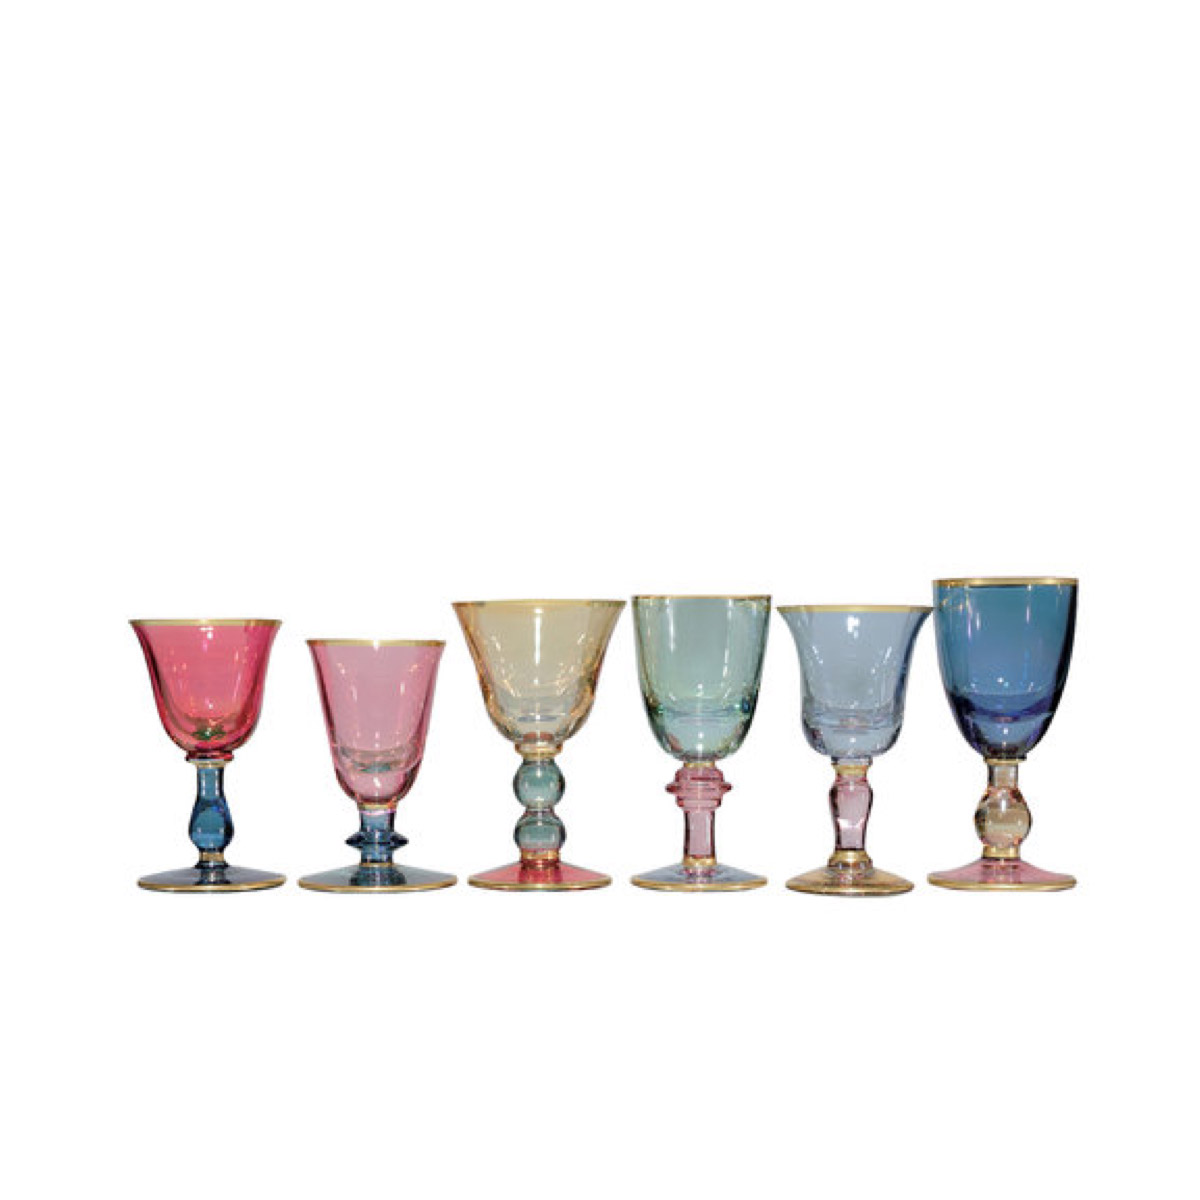 Arlecchino liquor glasses